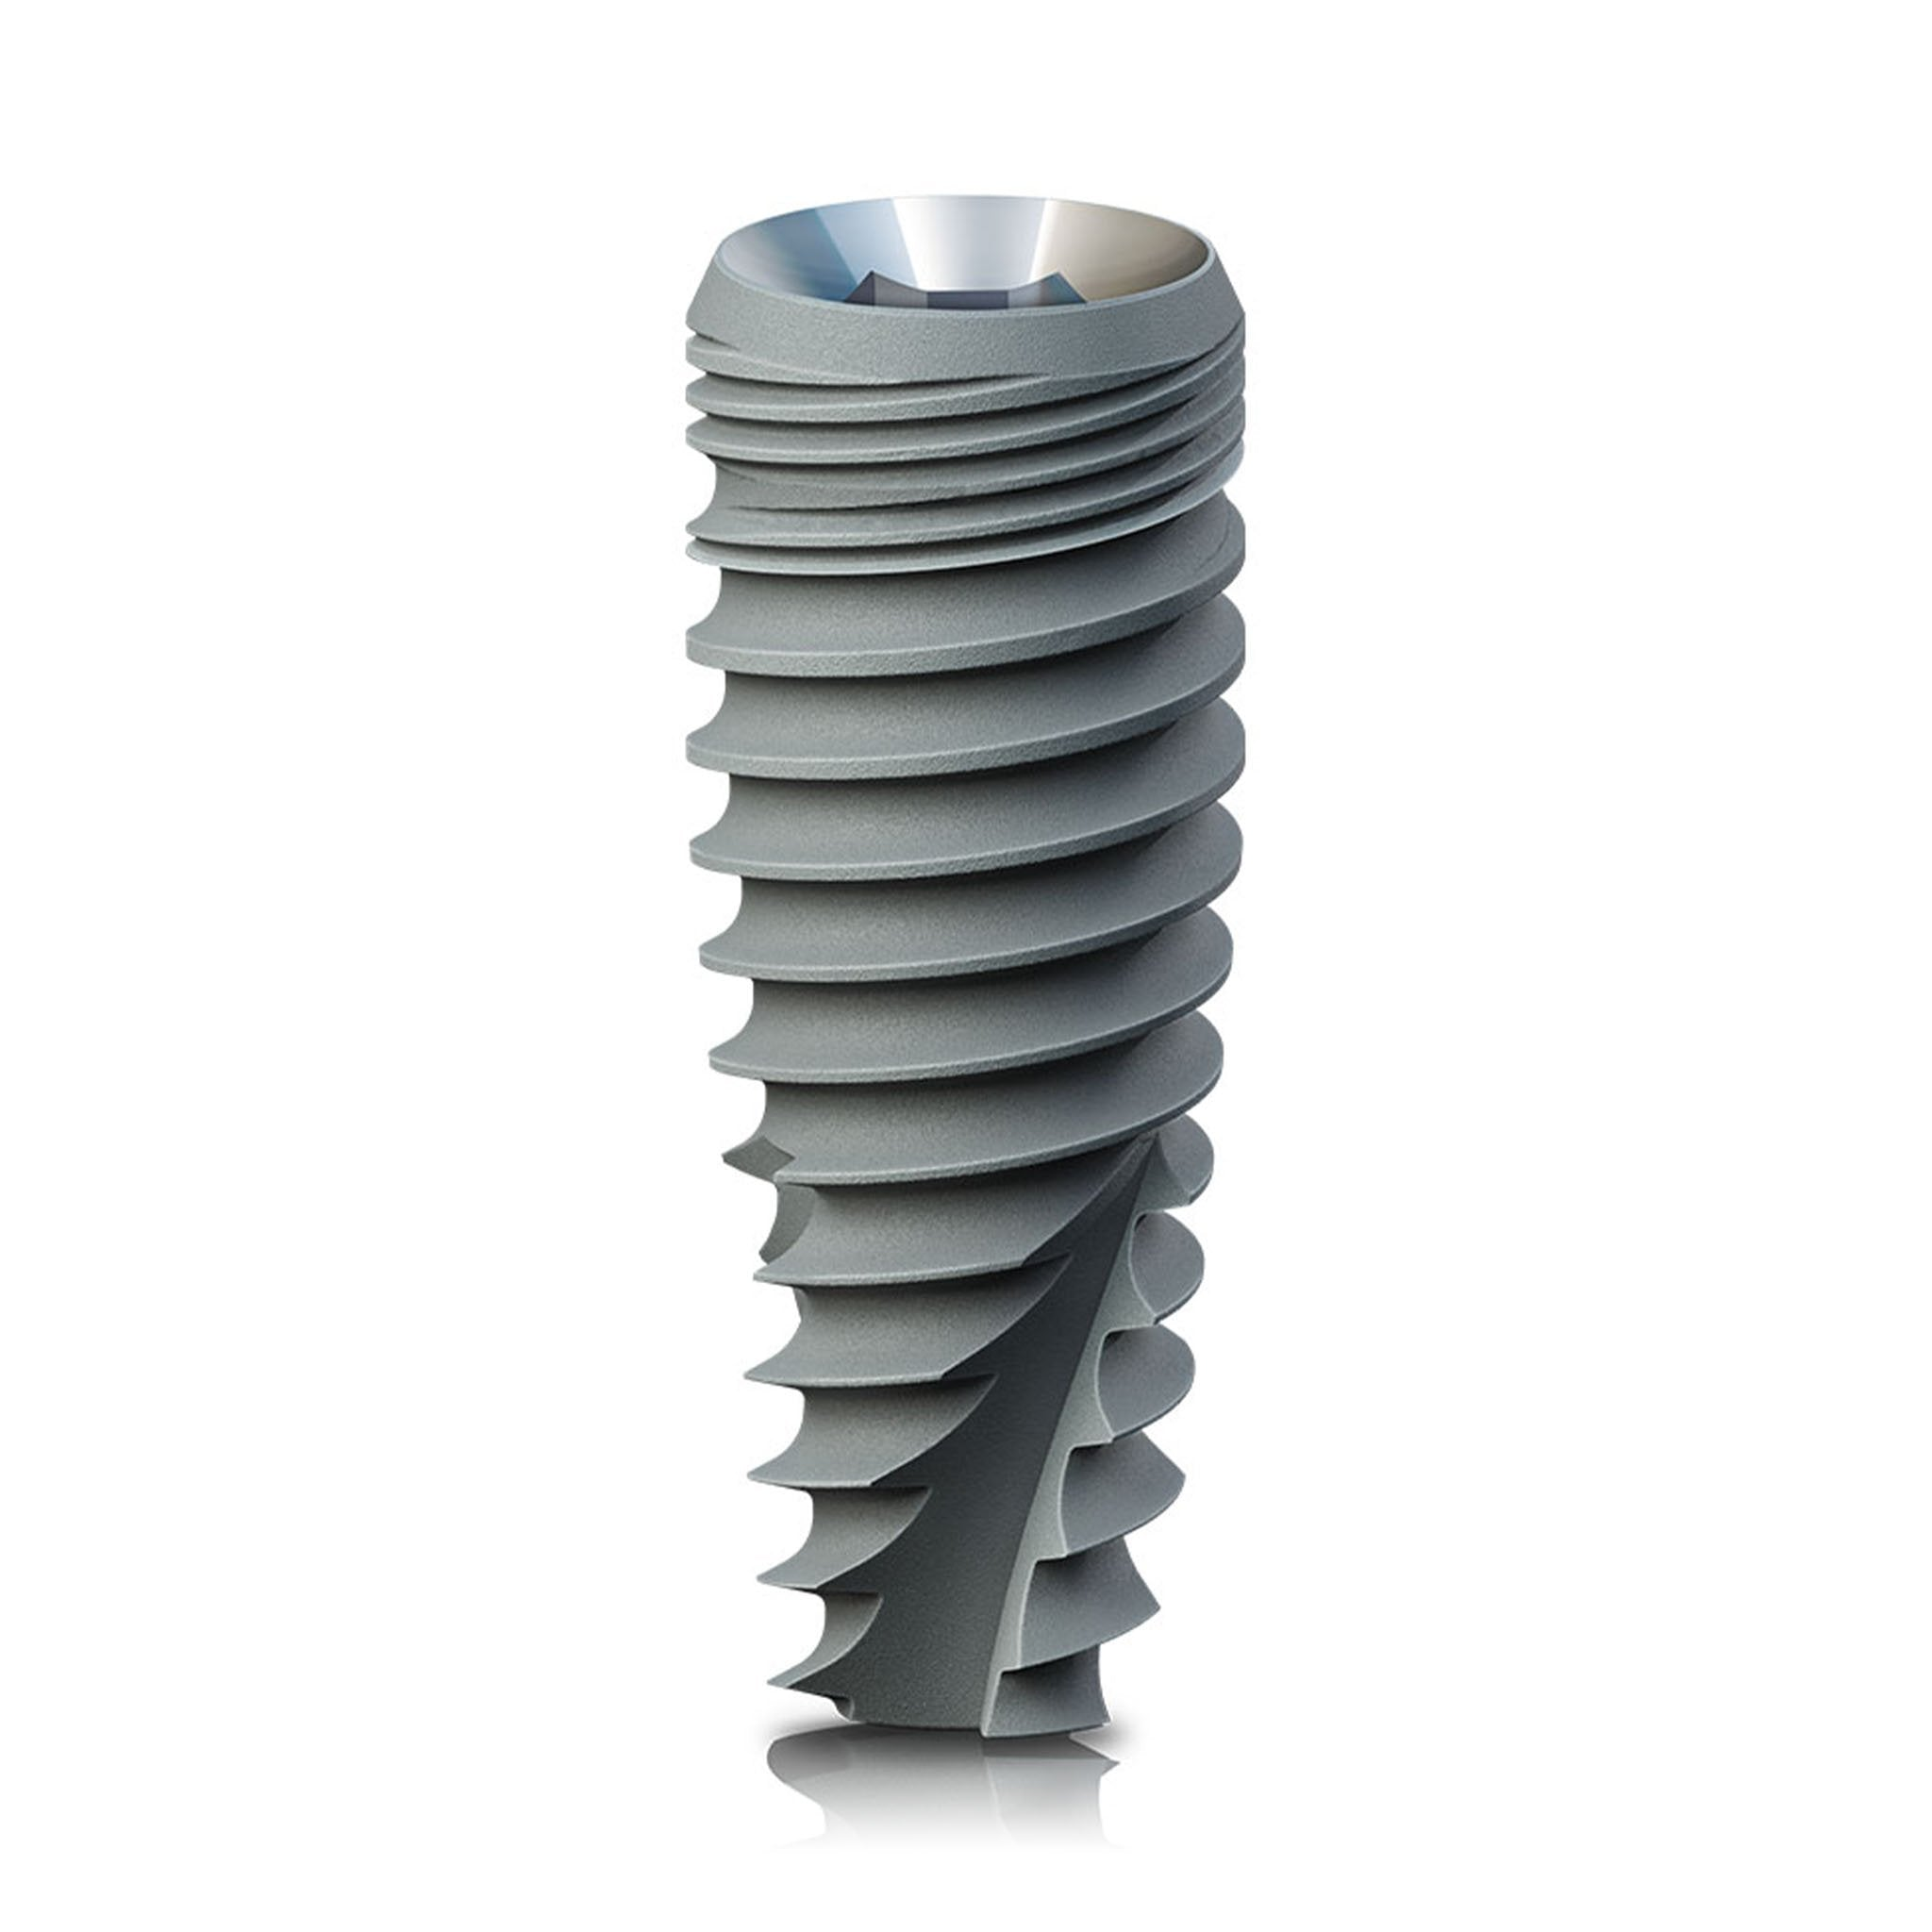 Dynamic Implant SP Ø 5 x 11.5mm | K3